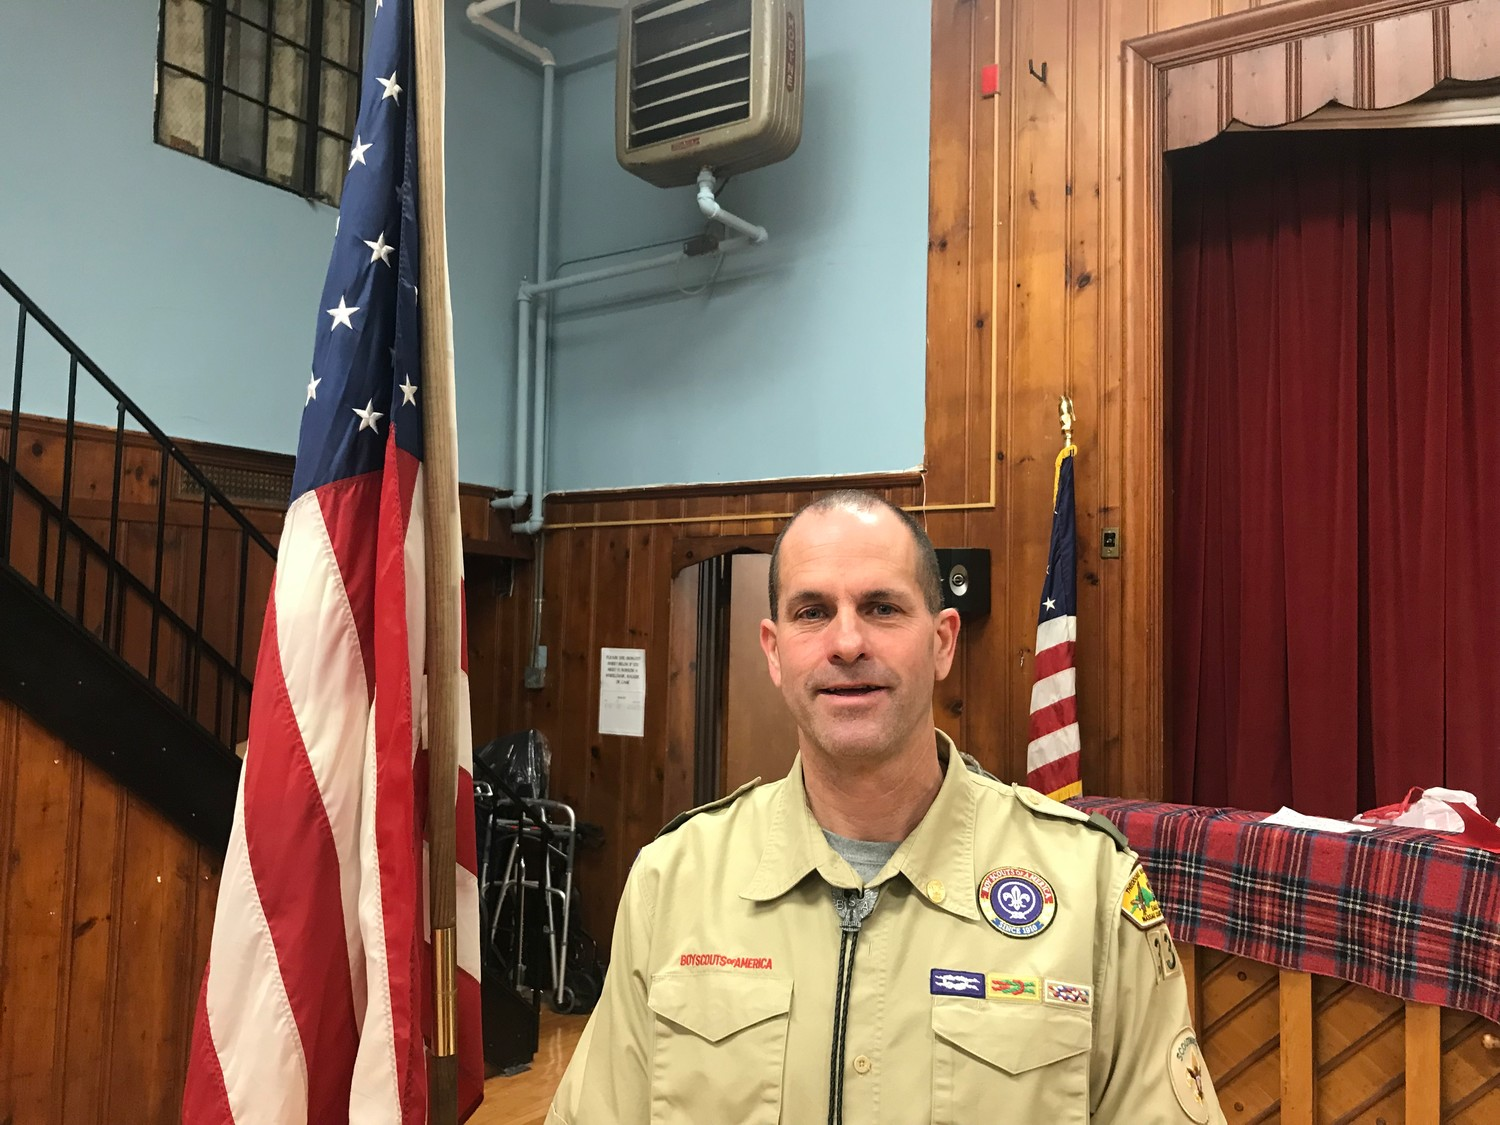 Steve Maroney dedicates more than 100 hours per month to Boy Scout Troop 336, and has helped many troop members move up the scouting ranks. For his dedication and selflessness, he is the Herald's 2017 Person of the Year.